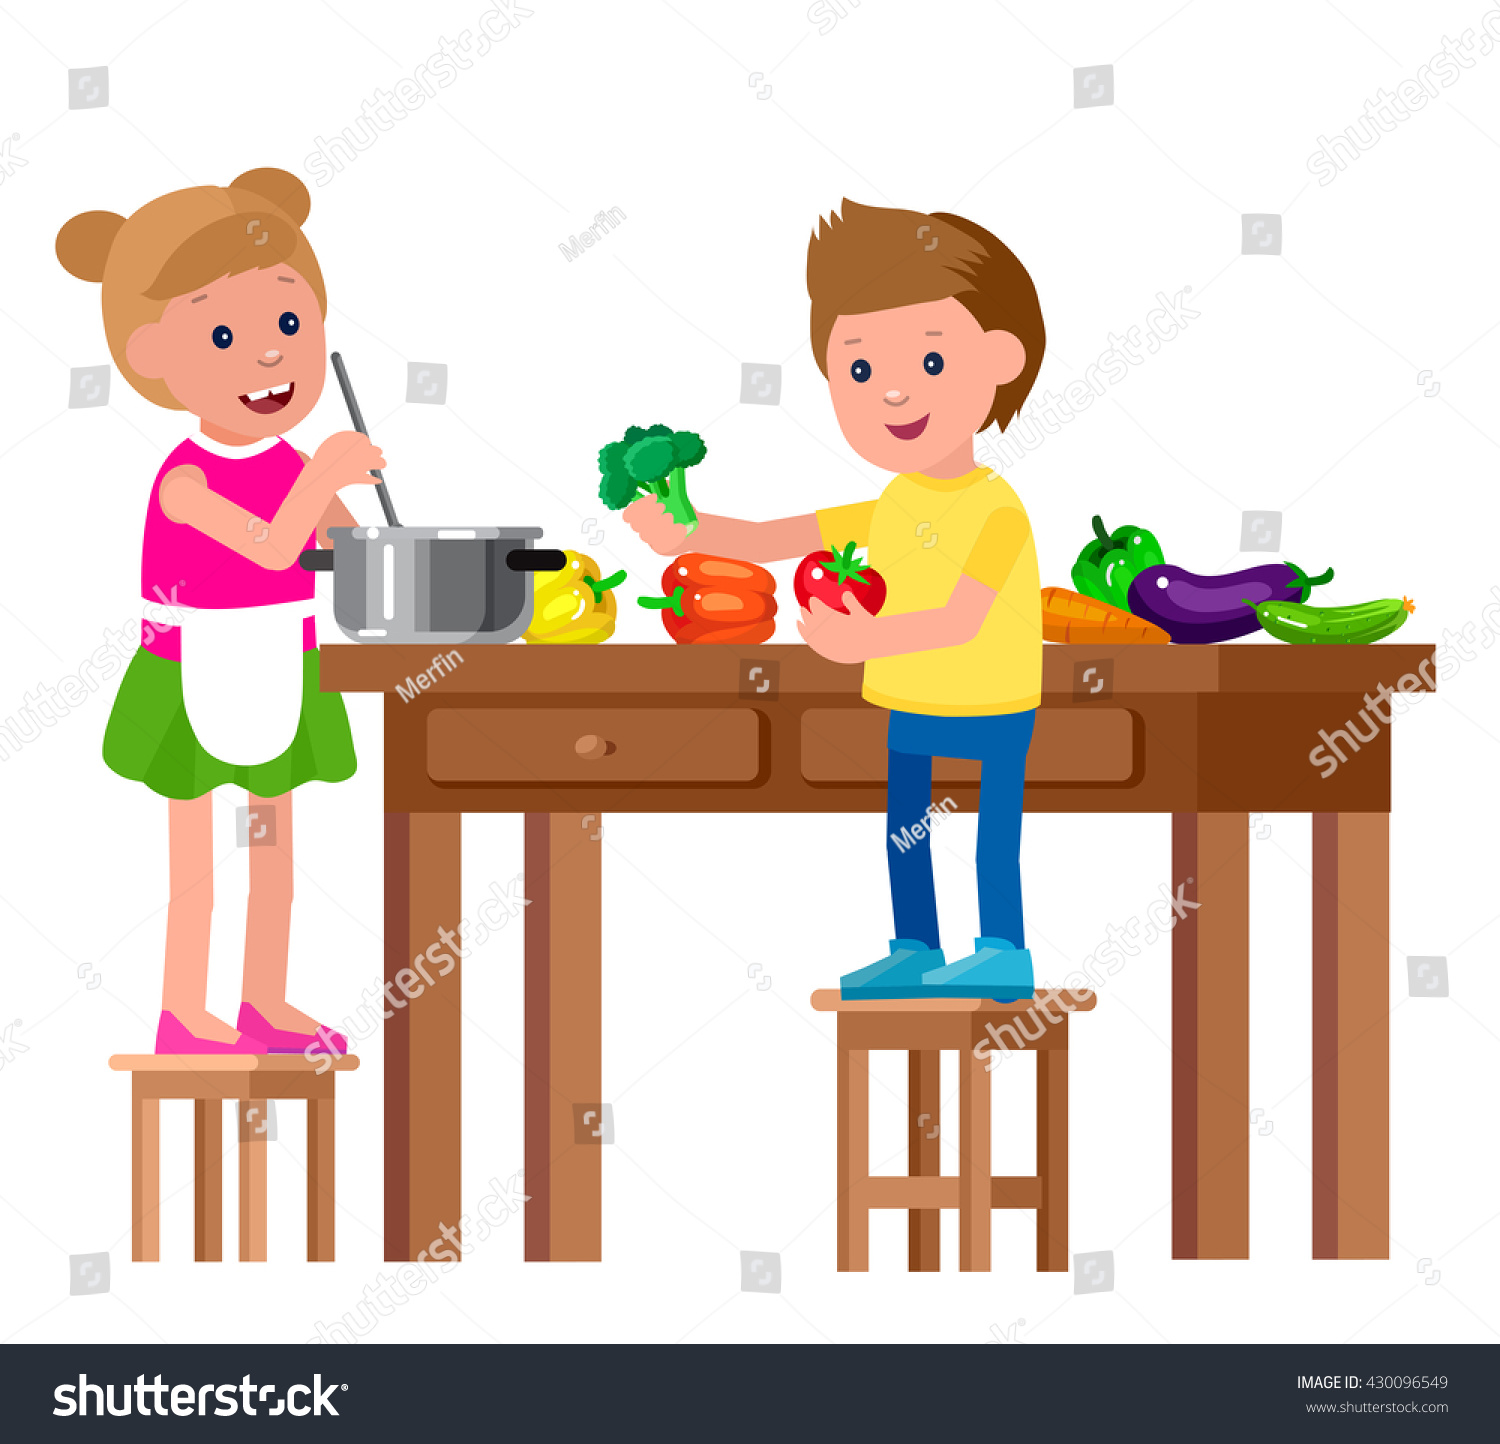 Cute Vector Character Child Healthy Food Stock Vector -8616